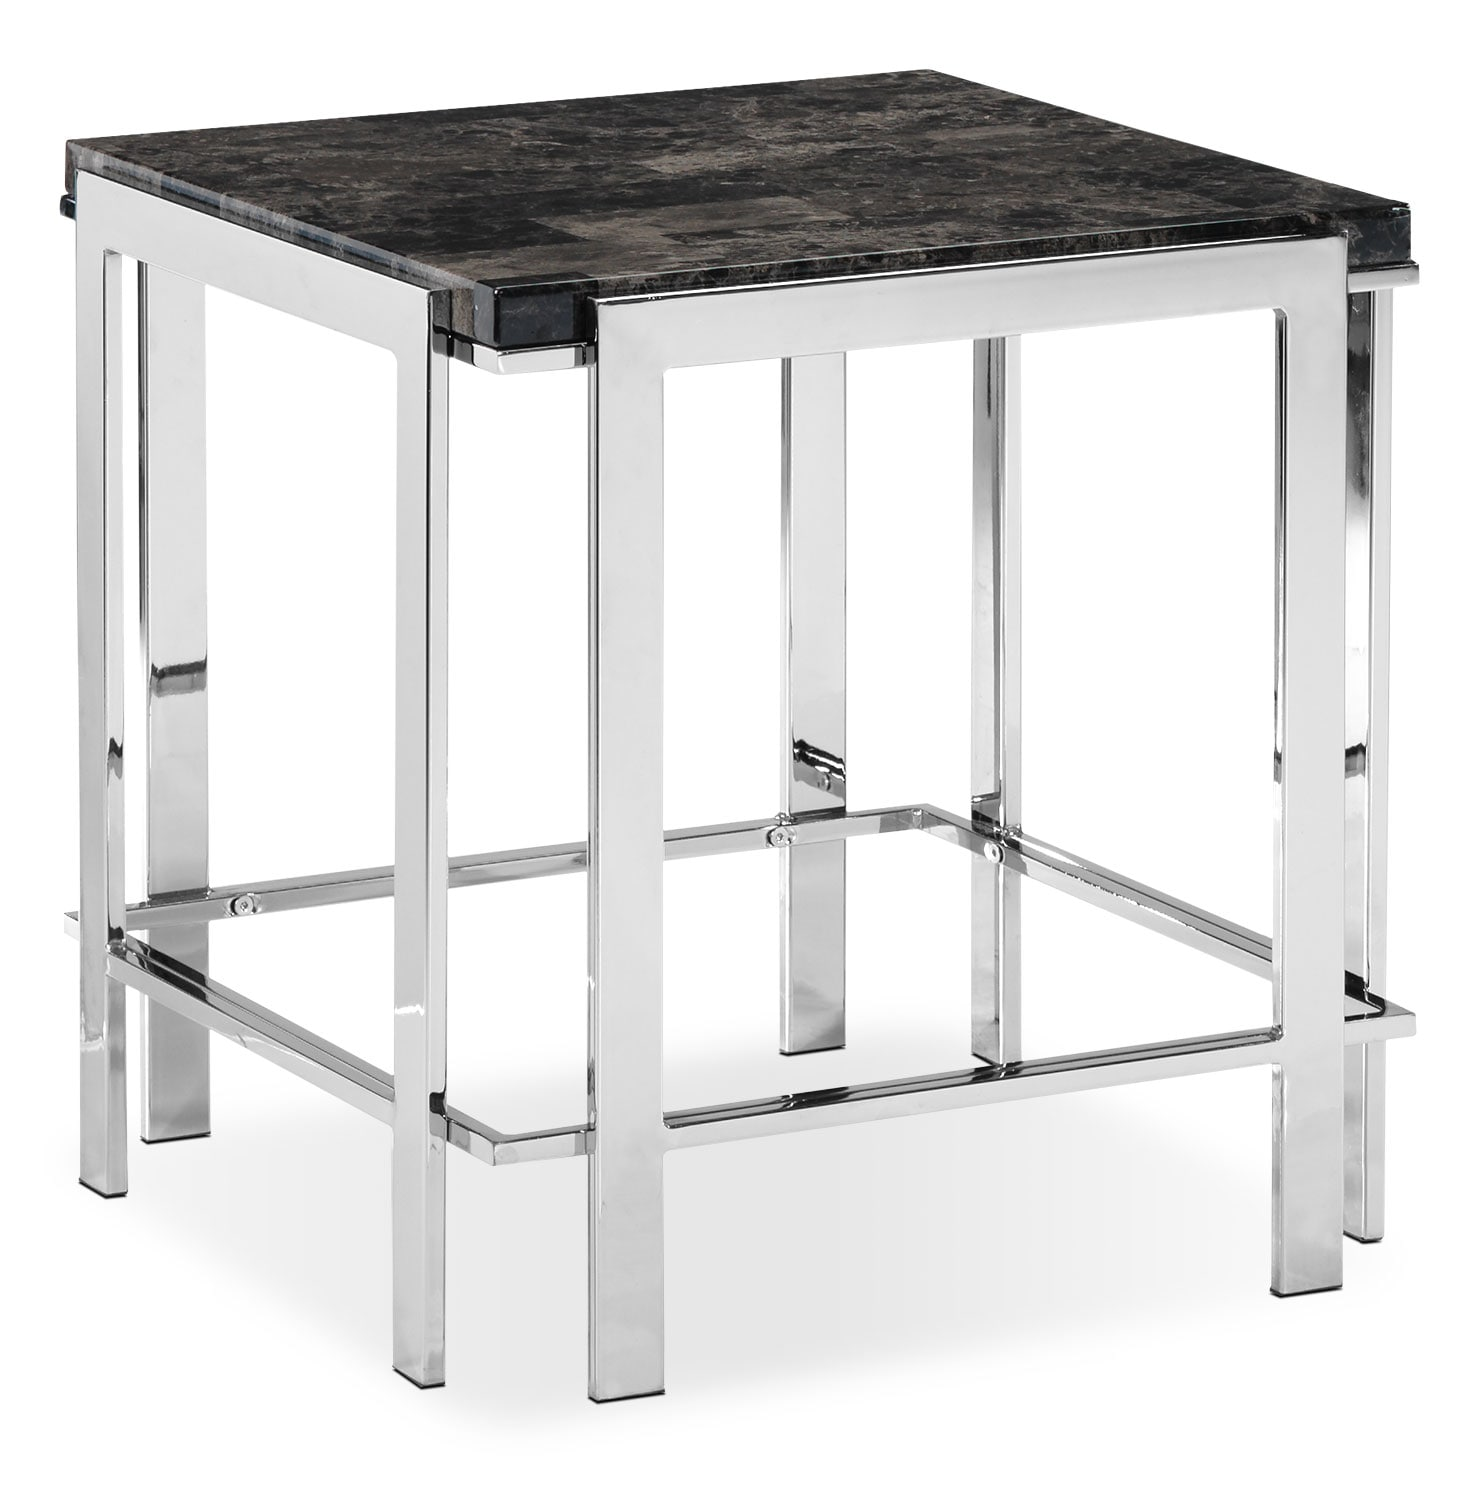 Iris End Table - Chrome and Black